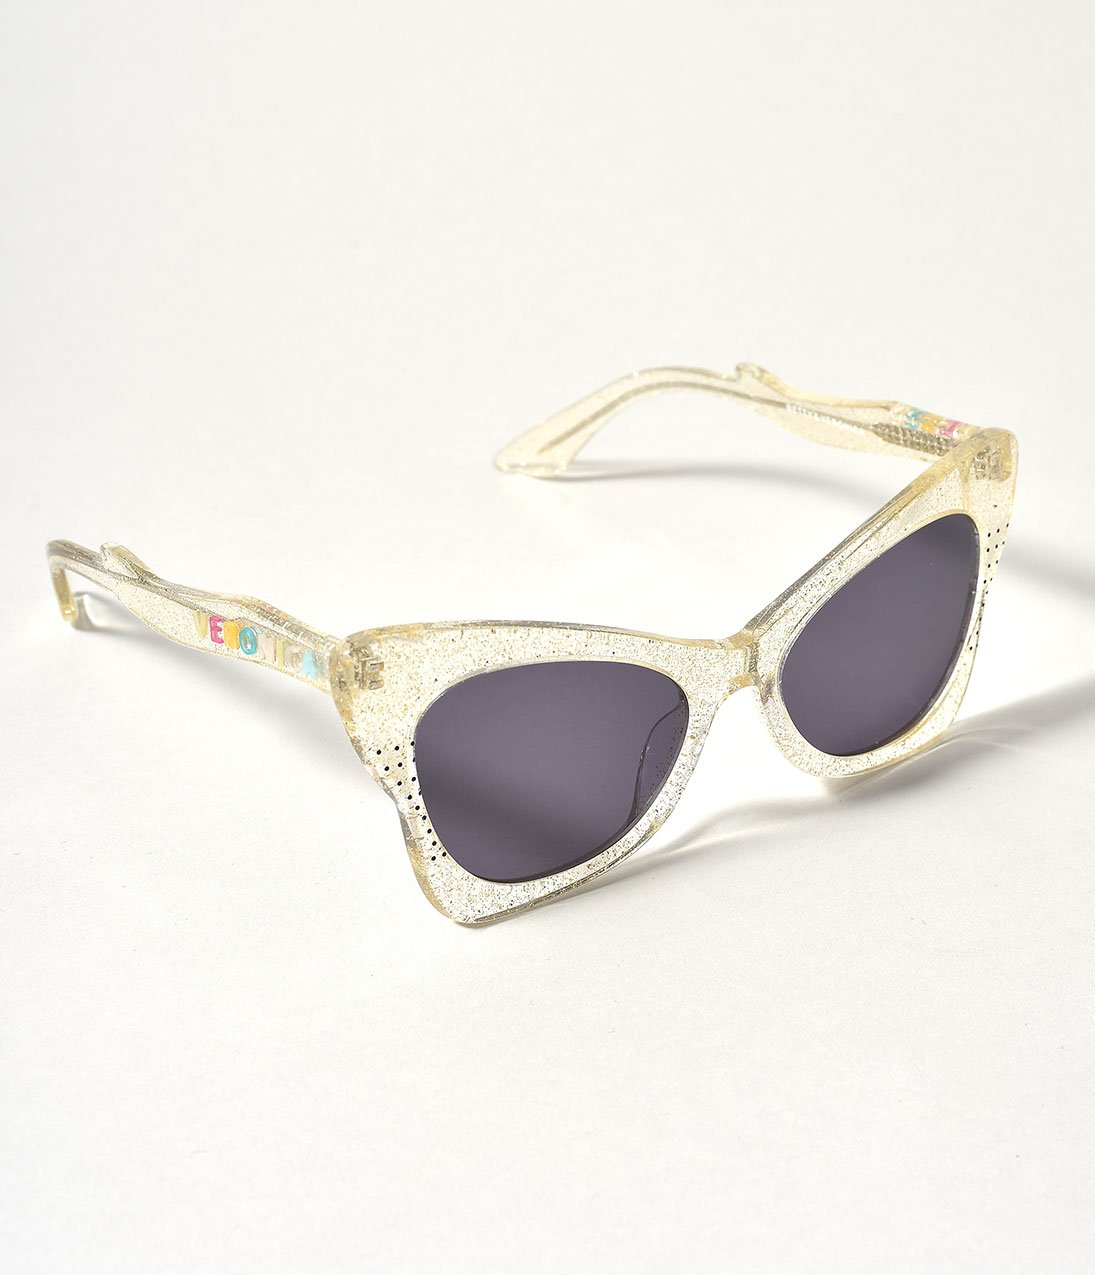 1950s_Style_Gold_Glitter_Ethel_Butterfly_Sunglasses_1_2048x2048